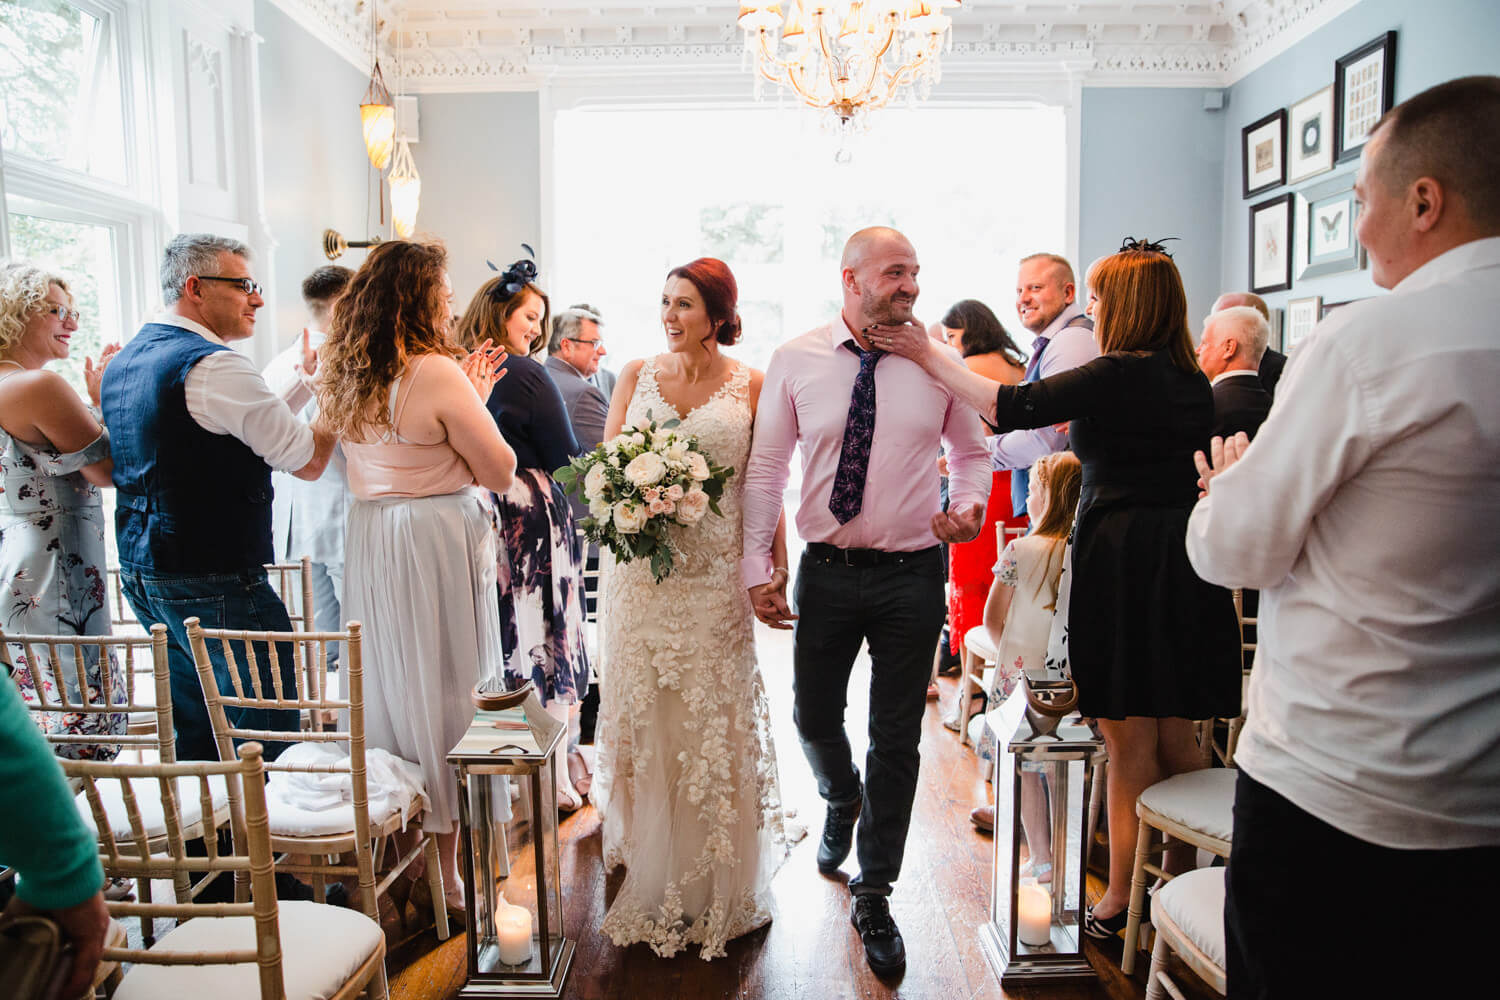 newly married couple walk down aisle for ceremony processional and congratulated by wedding party